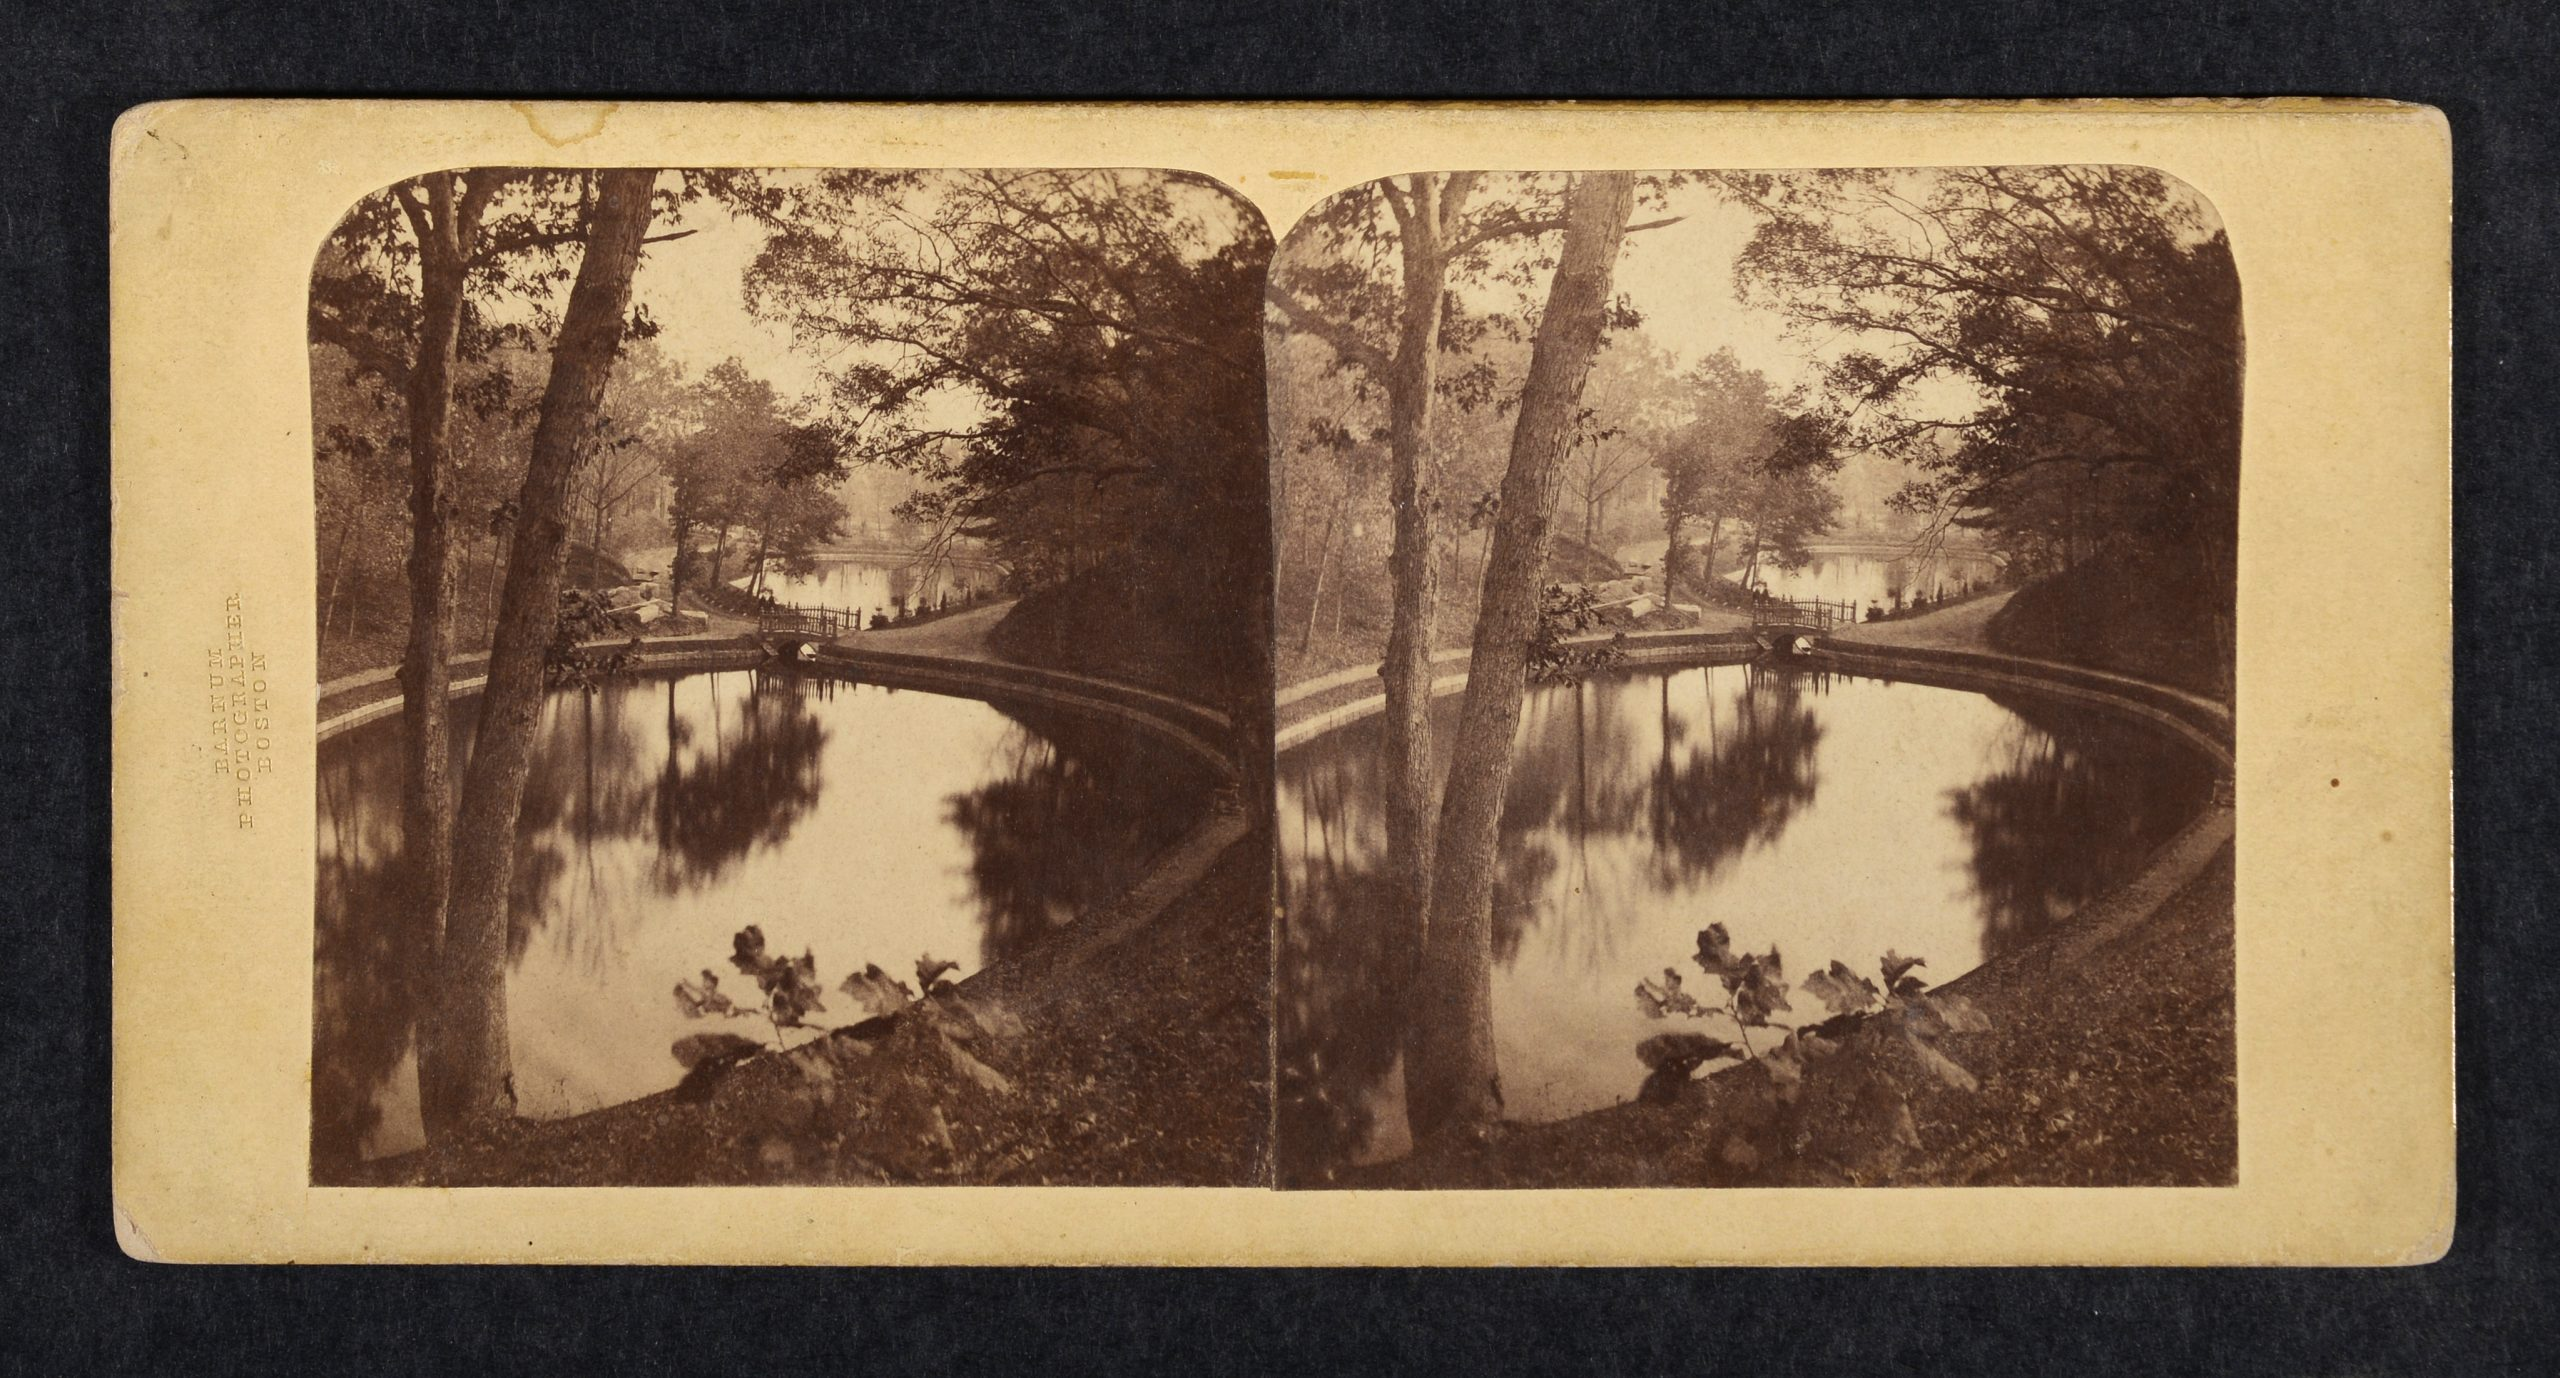 Stereoview of pond with foreground tree and plants, water reflecting trees.